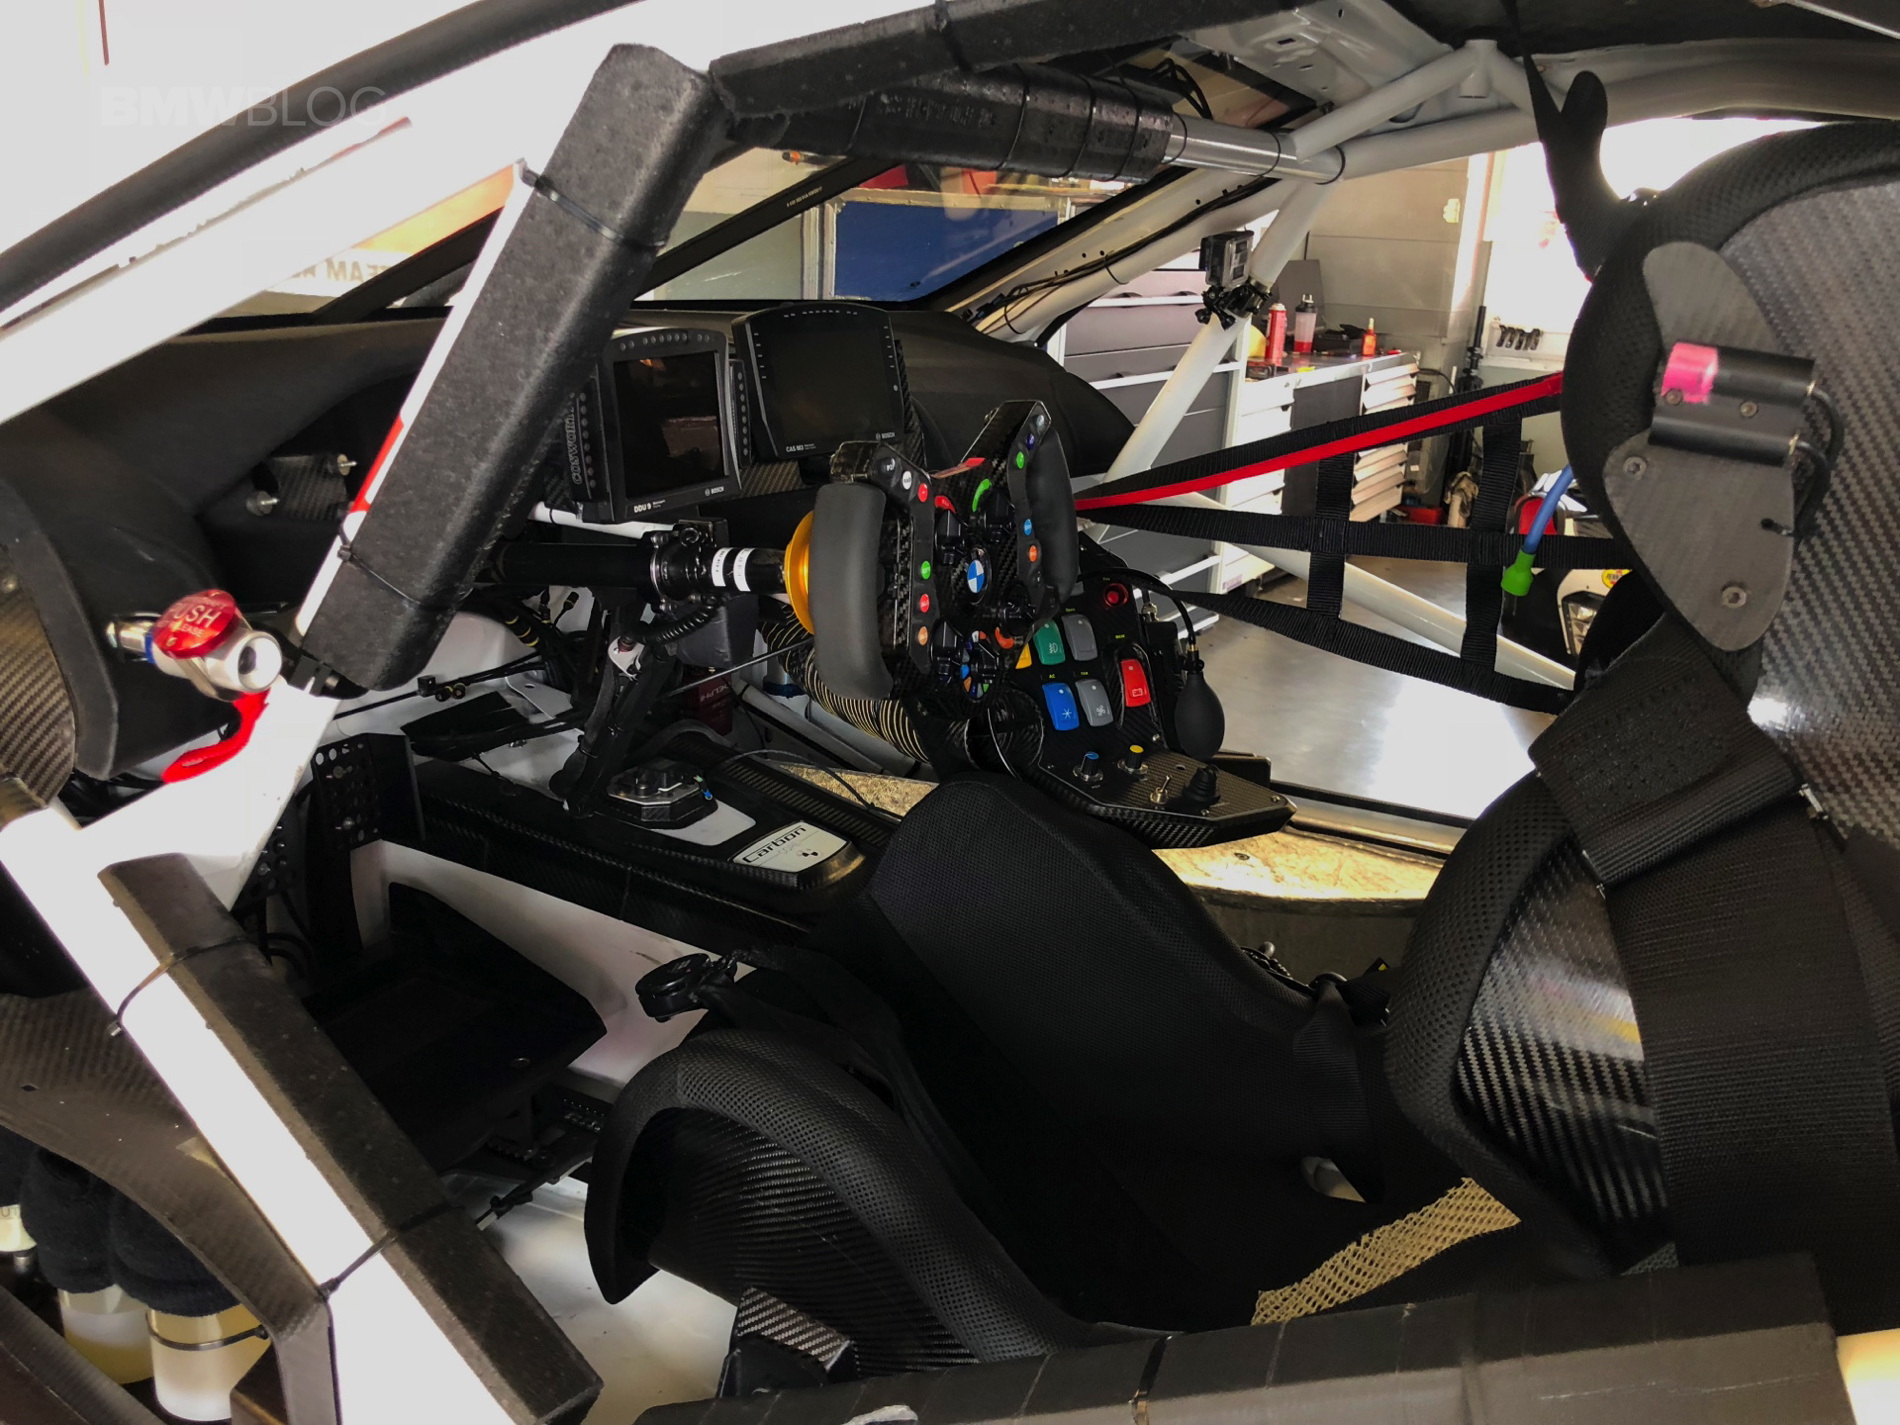 The BMW M8 GTE stripped down is pure mechanical artwork